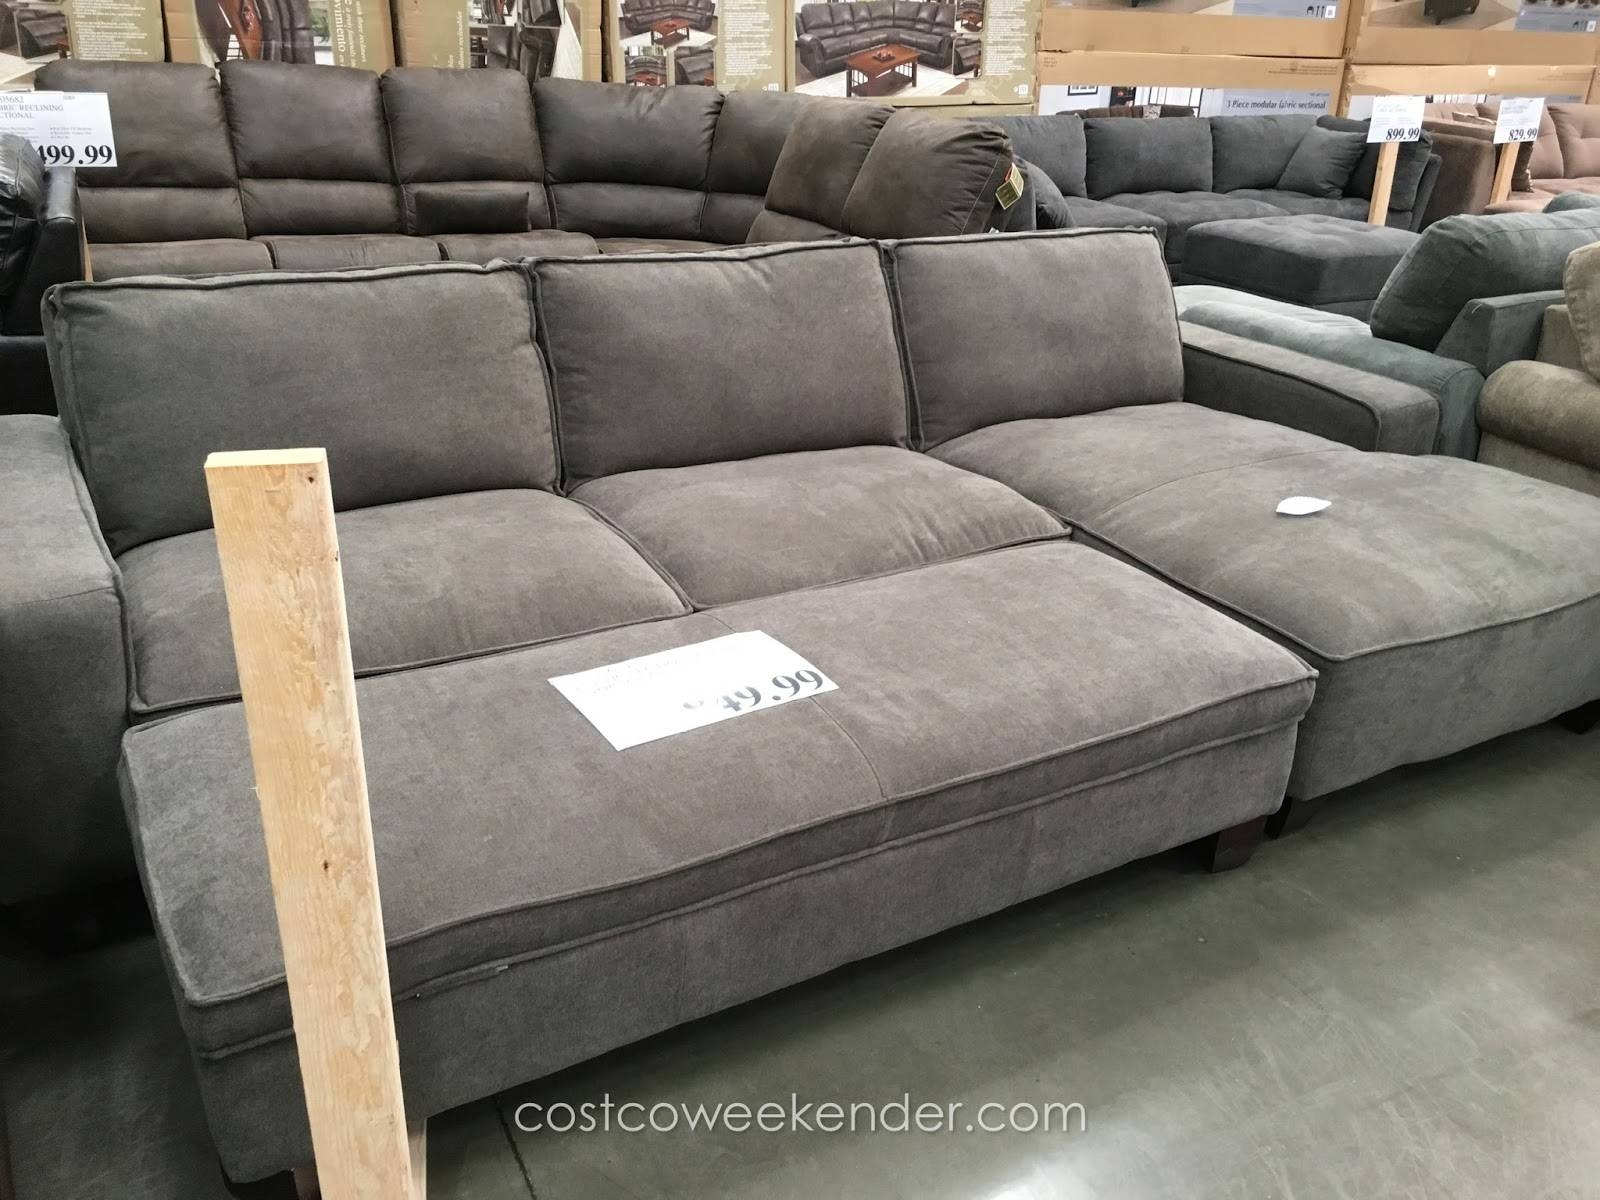 Sleeper Sectional Sofa With Storage Chaise | Tehranmix Decoration pertaining to Sectional Sofa With Storage (Image 20 of 25)